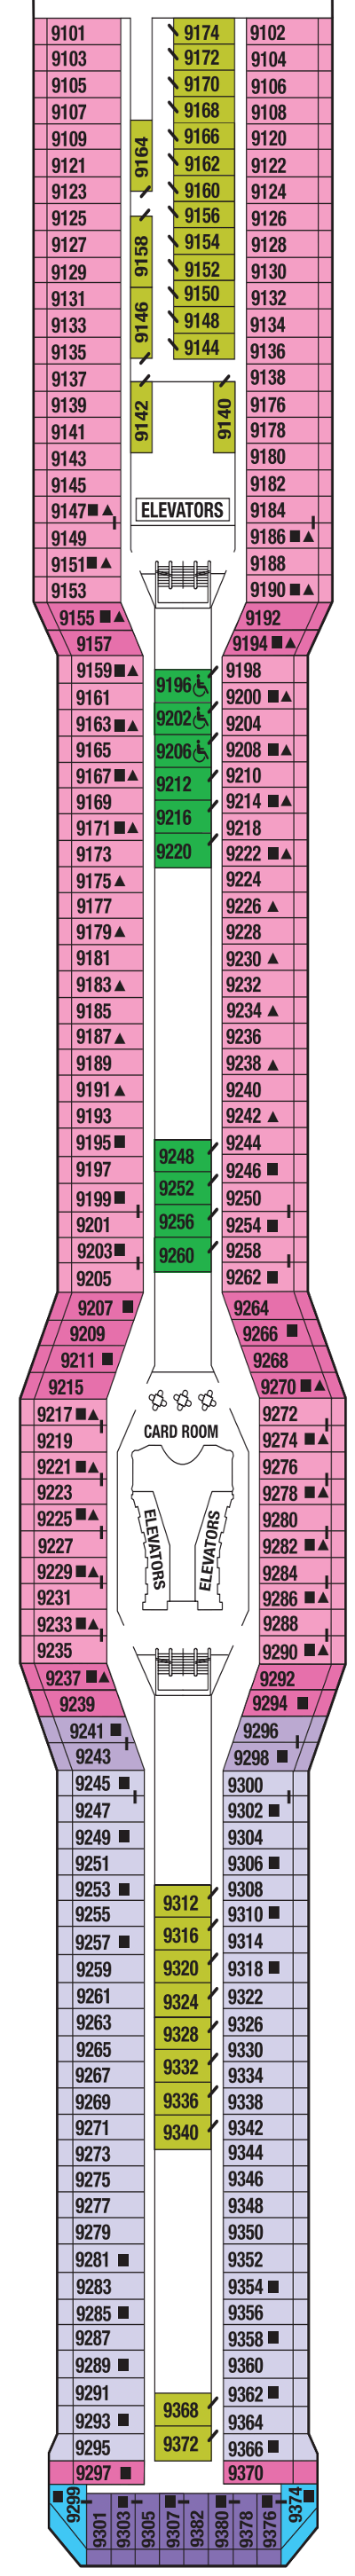 Celebrity Solstice Panorama Deck layout